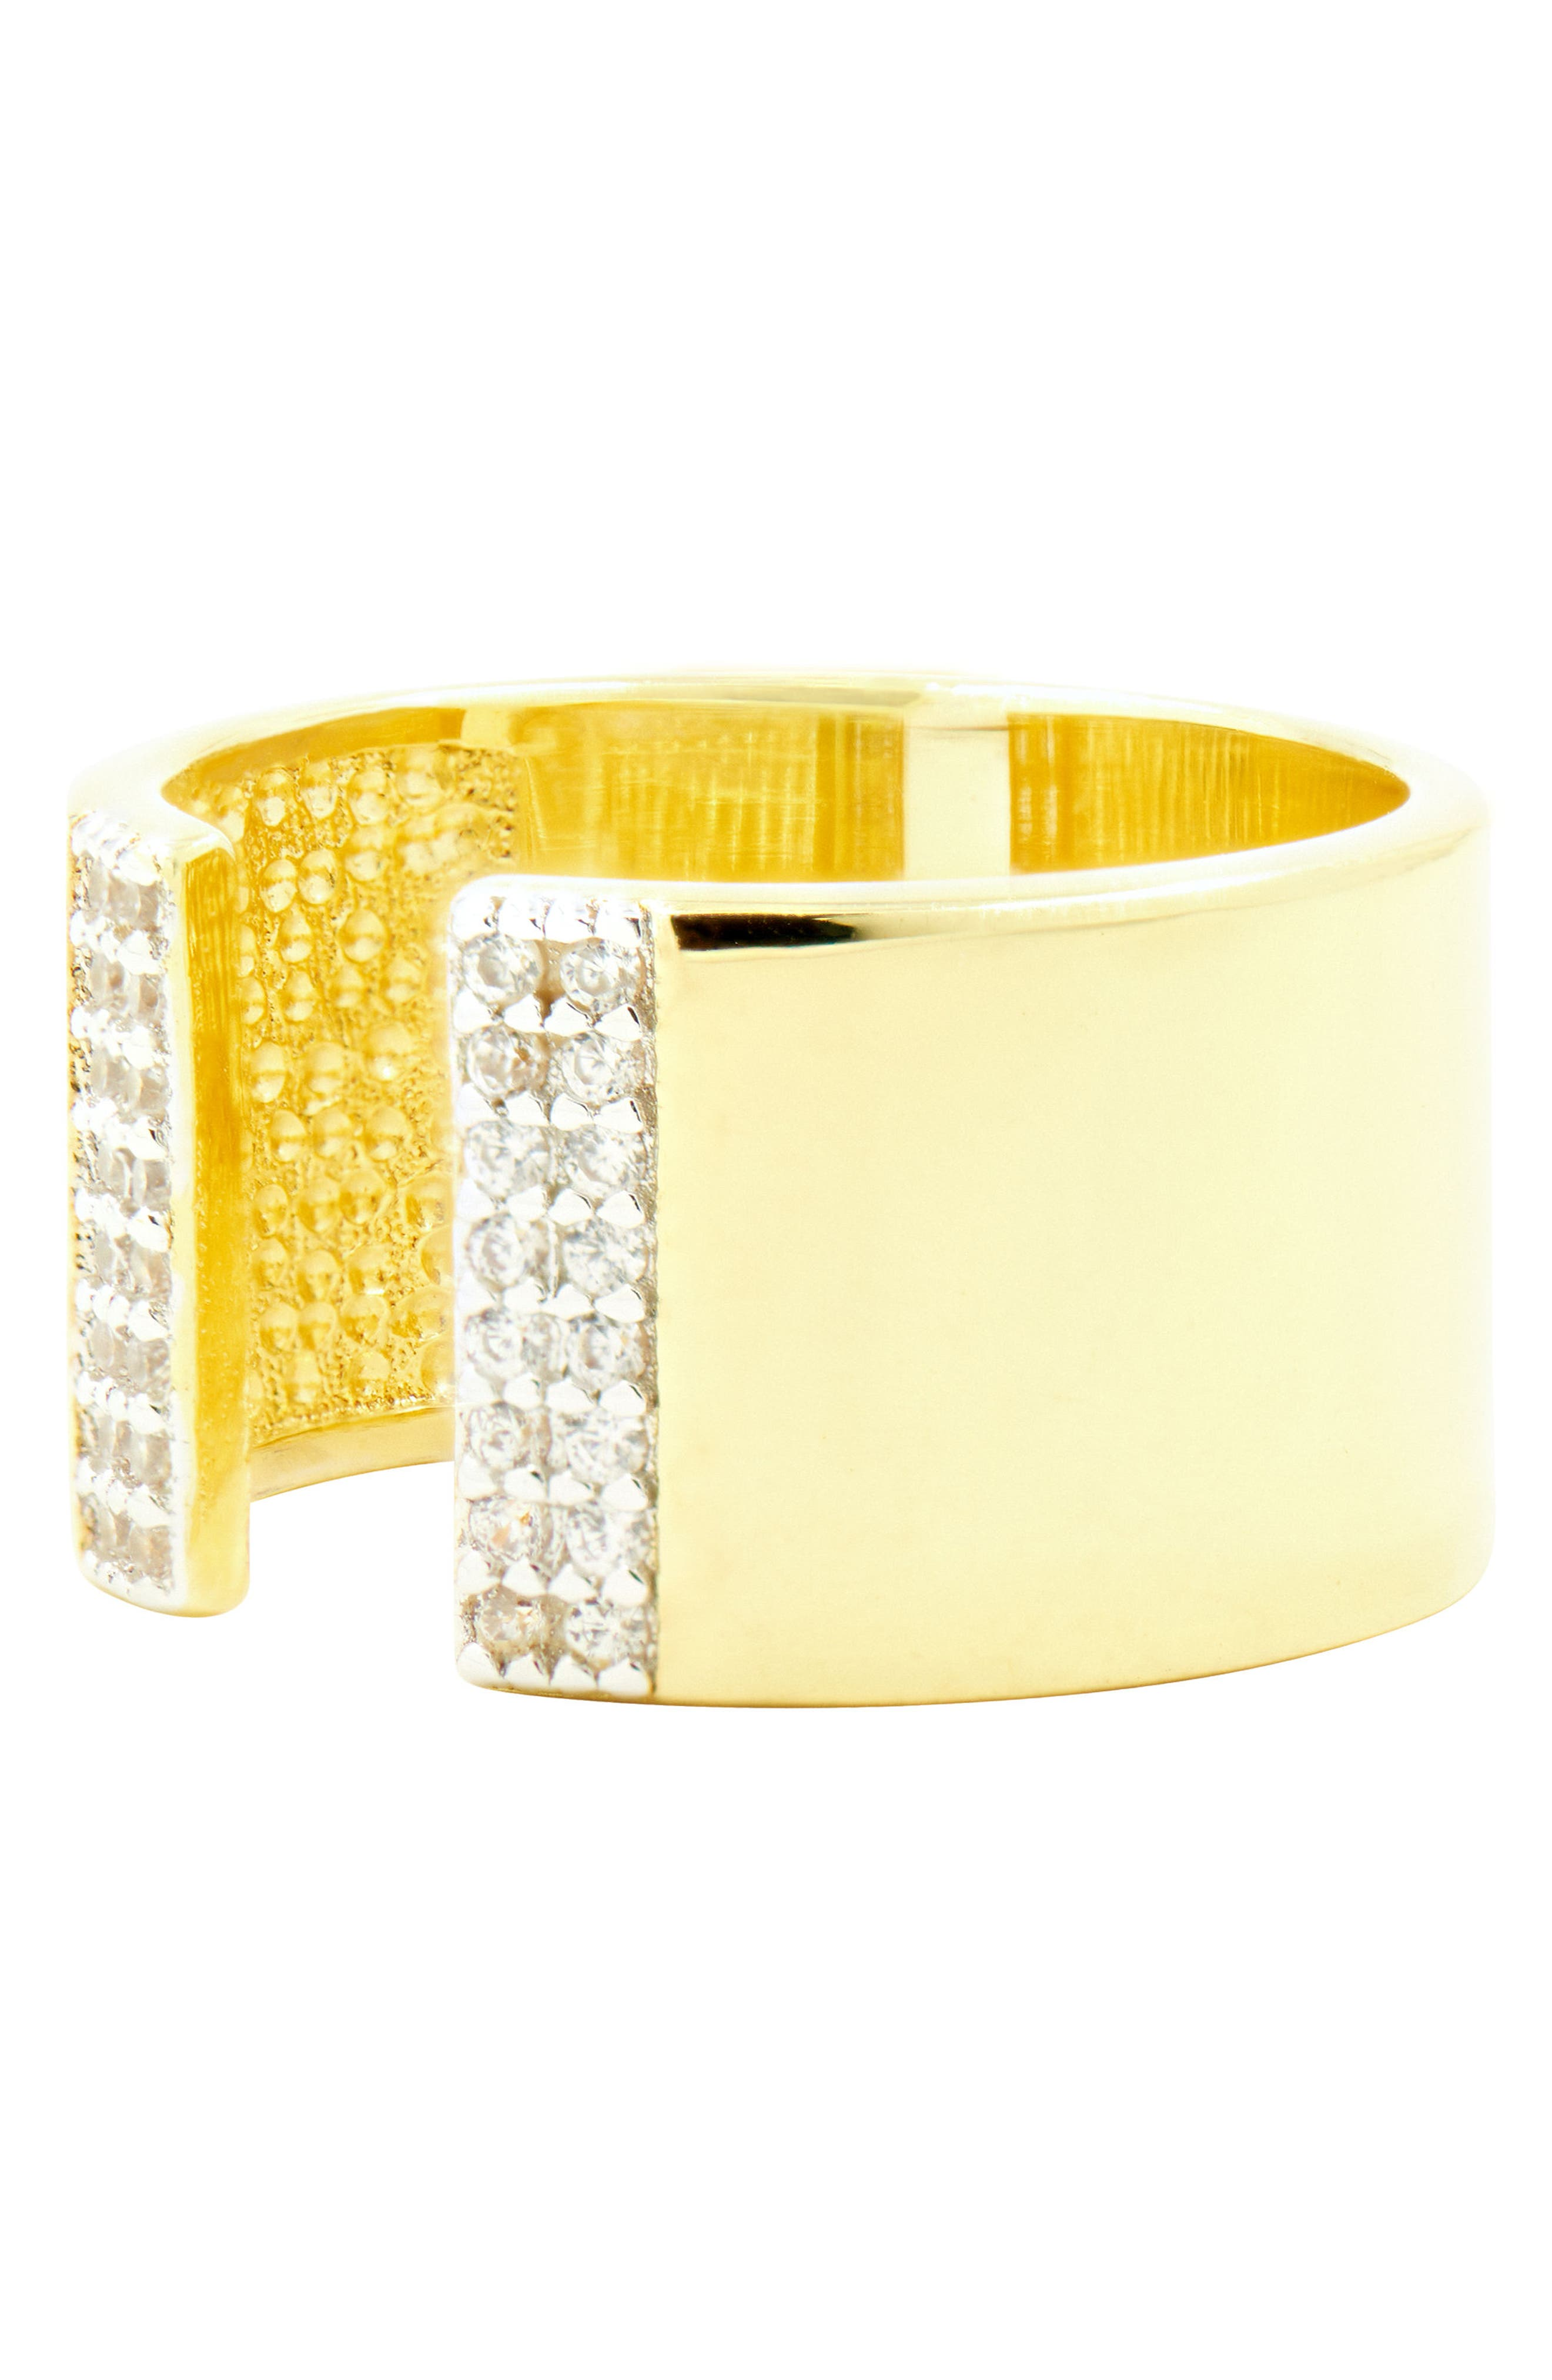 Radiance Cubic Zirconia Ring,                             Alternate thumbnail 2, color,                             SILVER/ GOLD